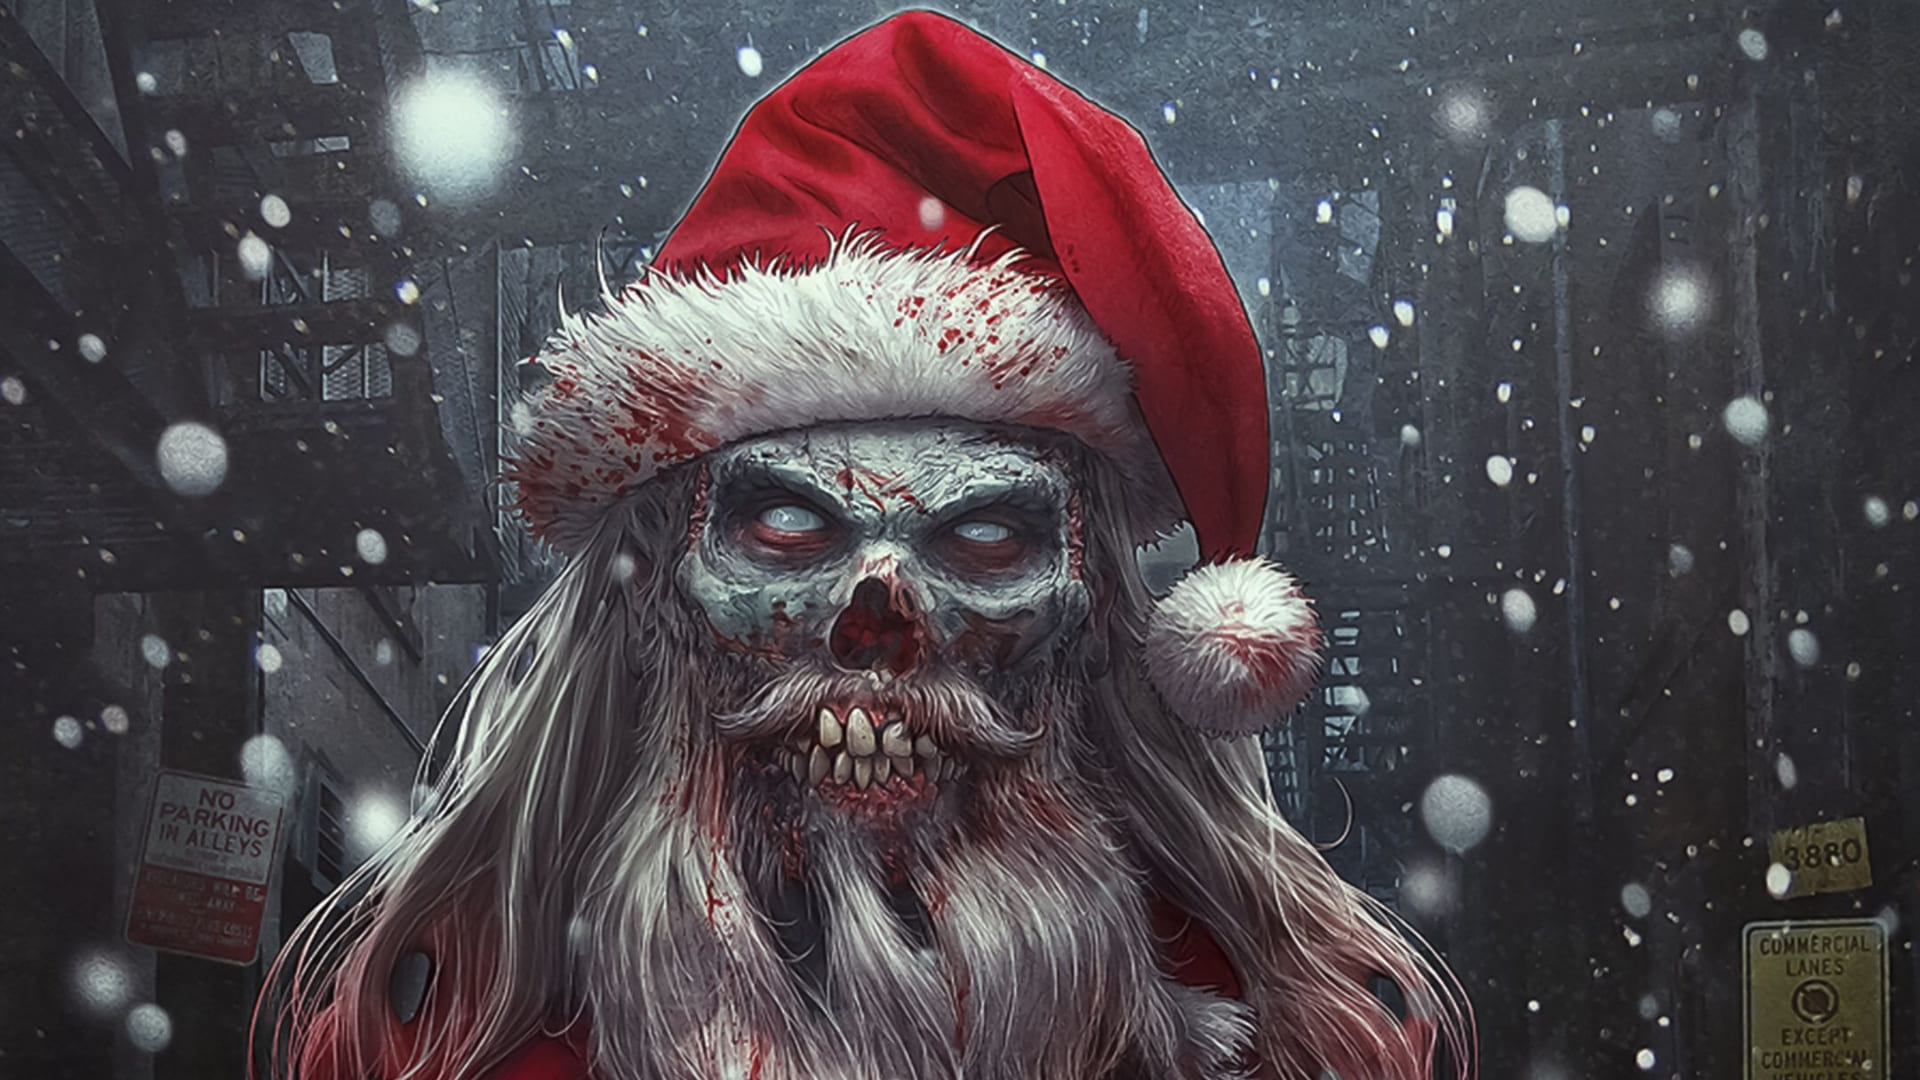 Scary Christmas wallpapers